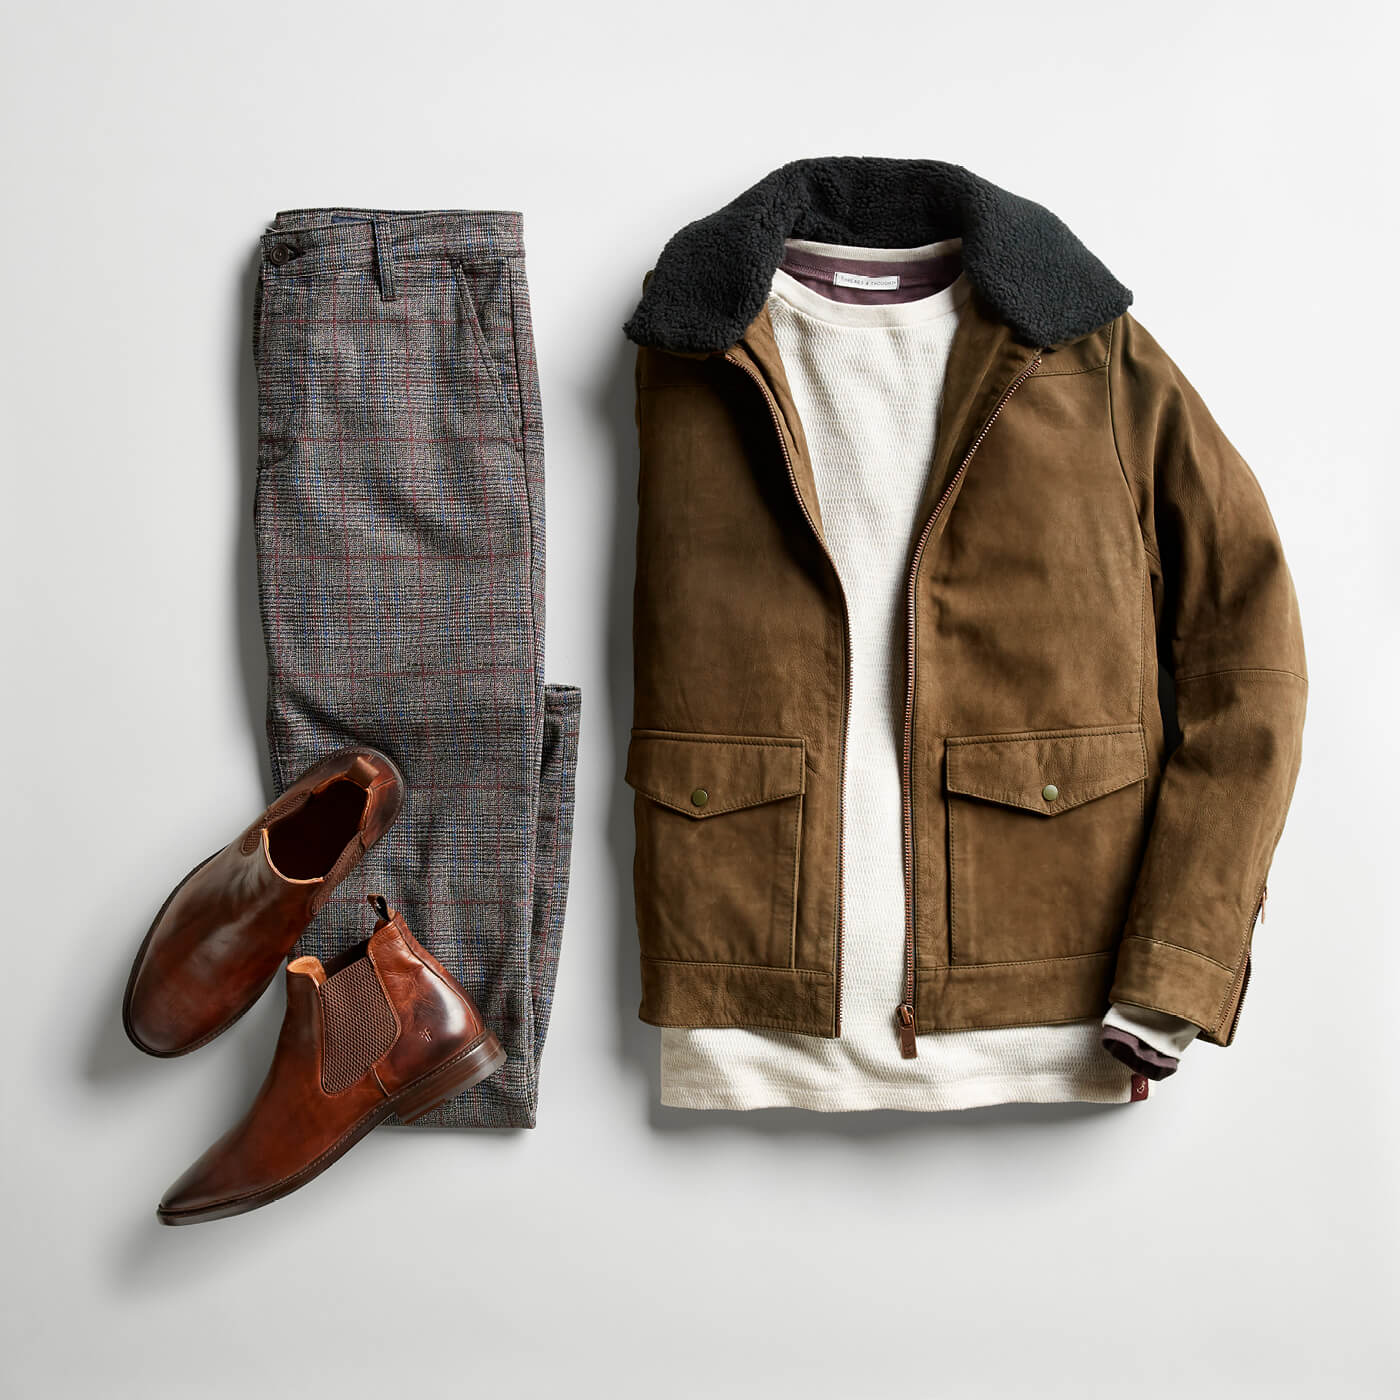 shearling jacket and grey pants